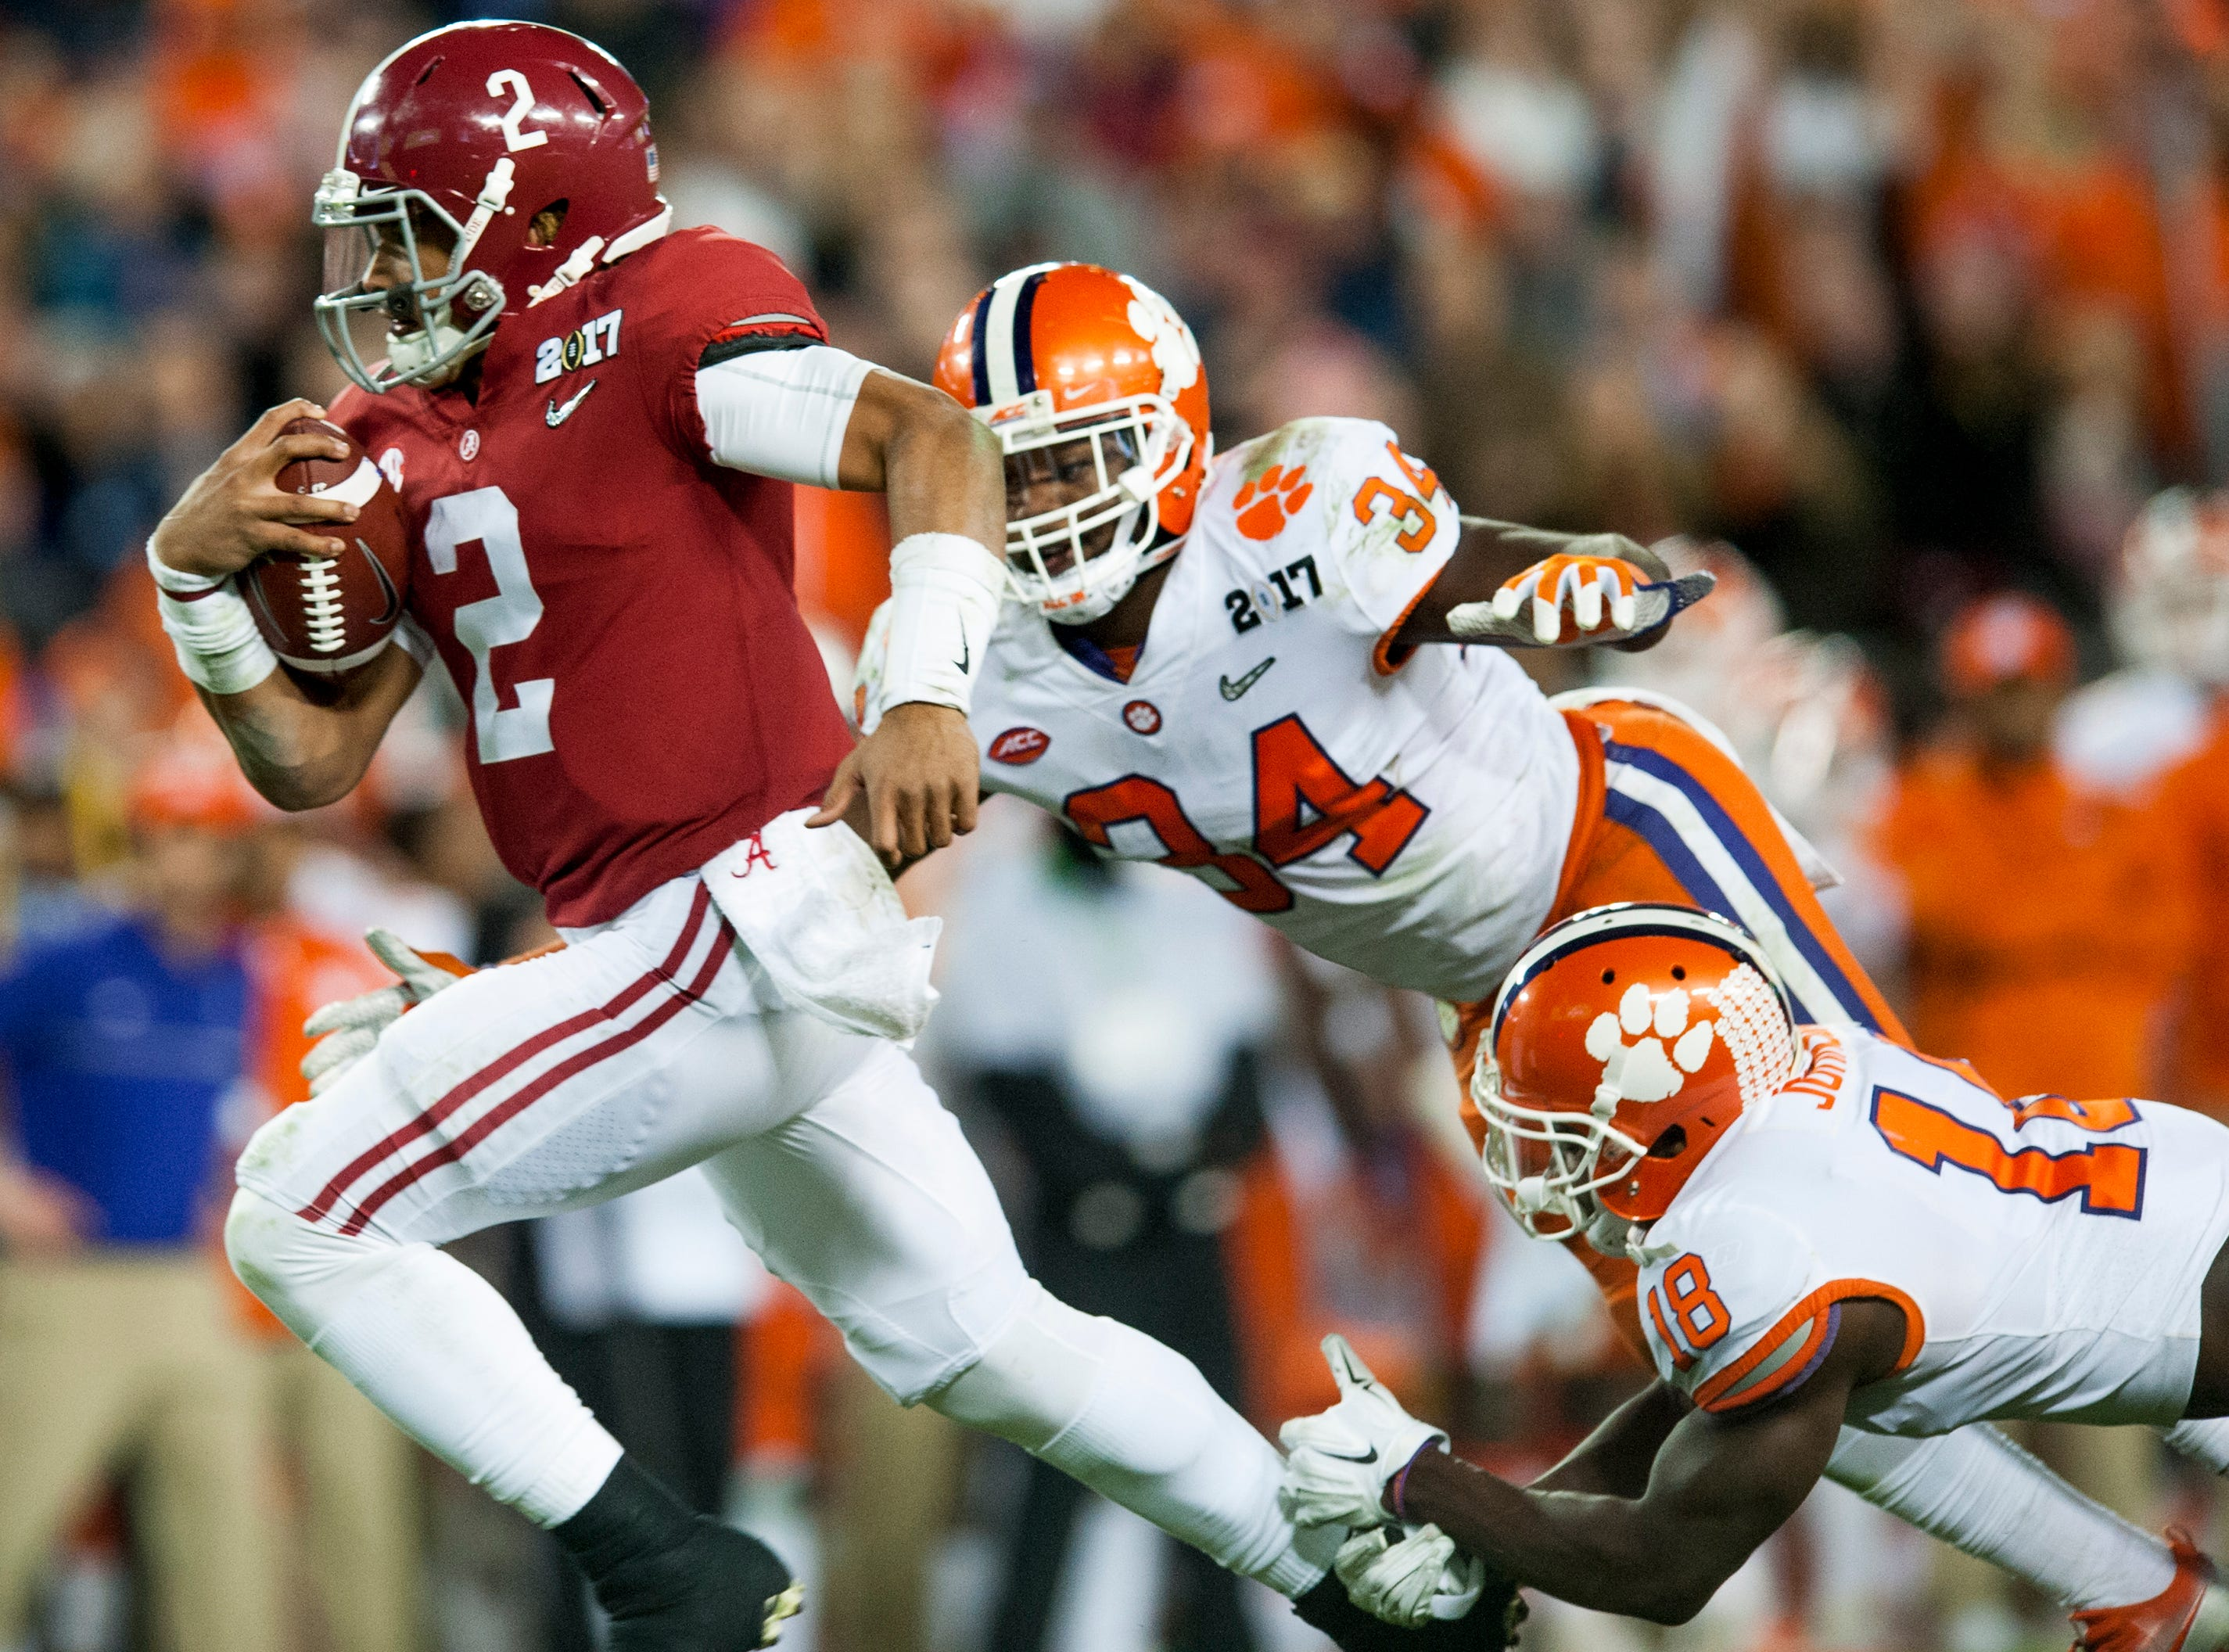 Alabama quarterback Jalen Hurts (2) breaks away from Clemson linebacker Kendall Joseph (34) and Clemson safety Jadar Johnson (18) for a late touchdown in second half action of the College Football Playoff National Championship Game at Raymond James Stadium in Tampa, Fla. on Monday January 9, 2017.